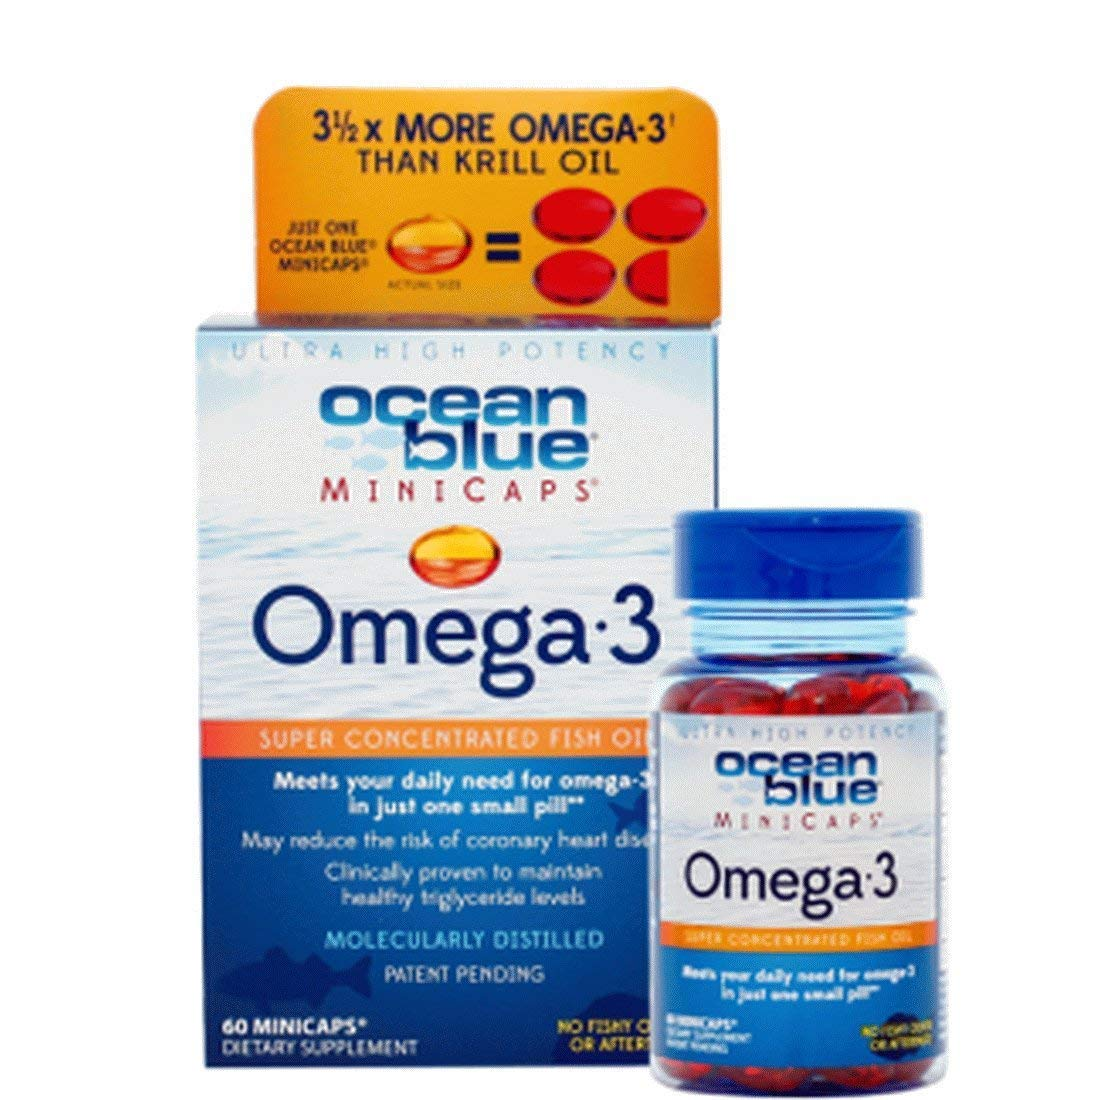 Ocean Blue Omega 3 Minicaps - 60 Count - 2-Pack - Omega 3 Fish Oil - Easy-To-Swallow Small Size - 1/3 Fat of Most Fish Oil